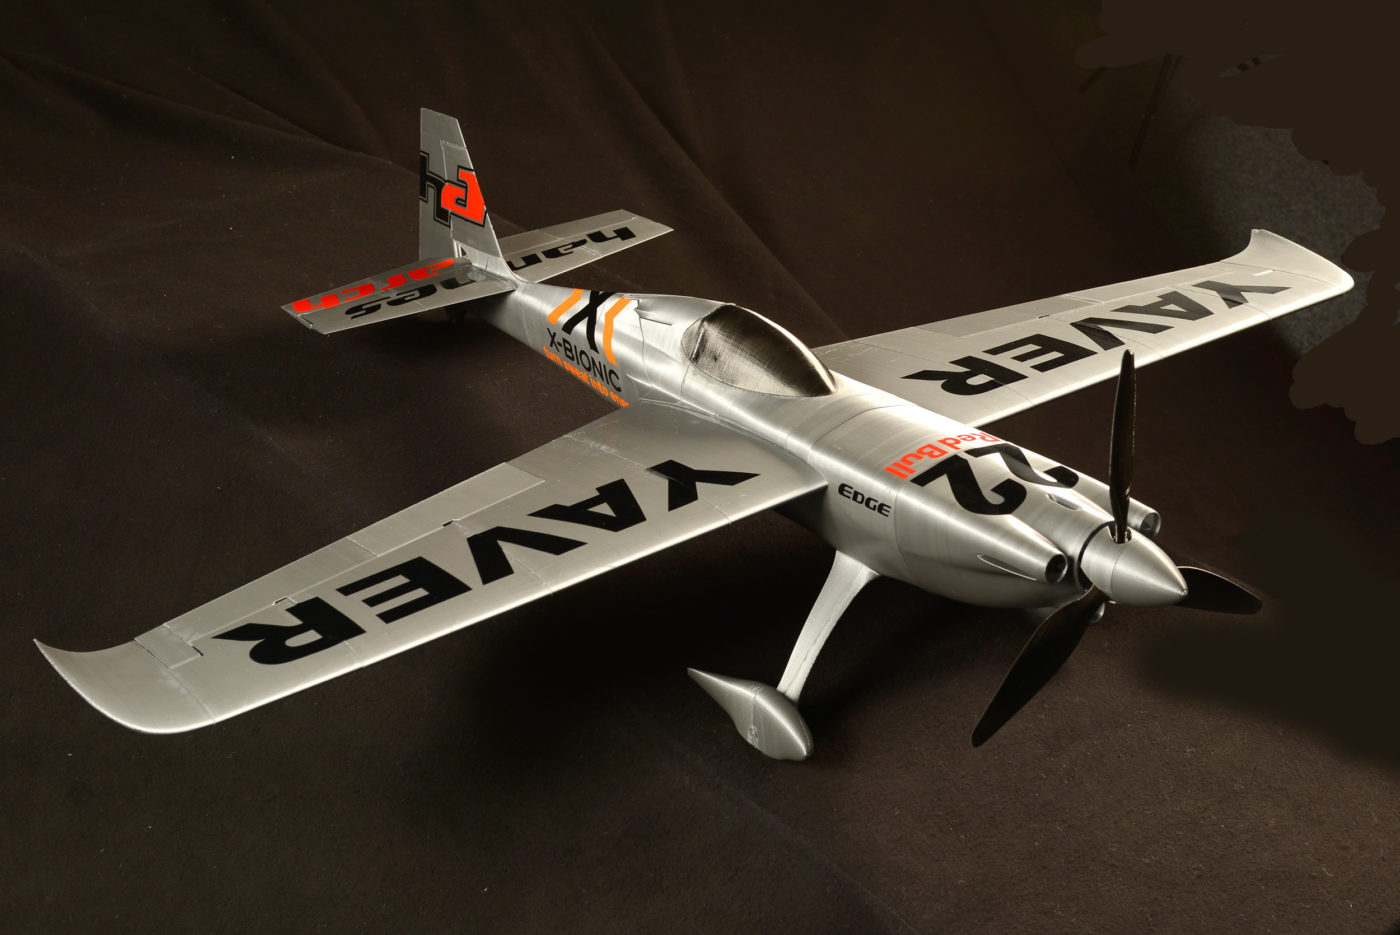 3d Printer Model Airplane Images